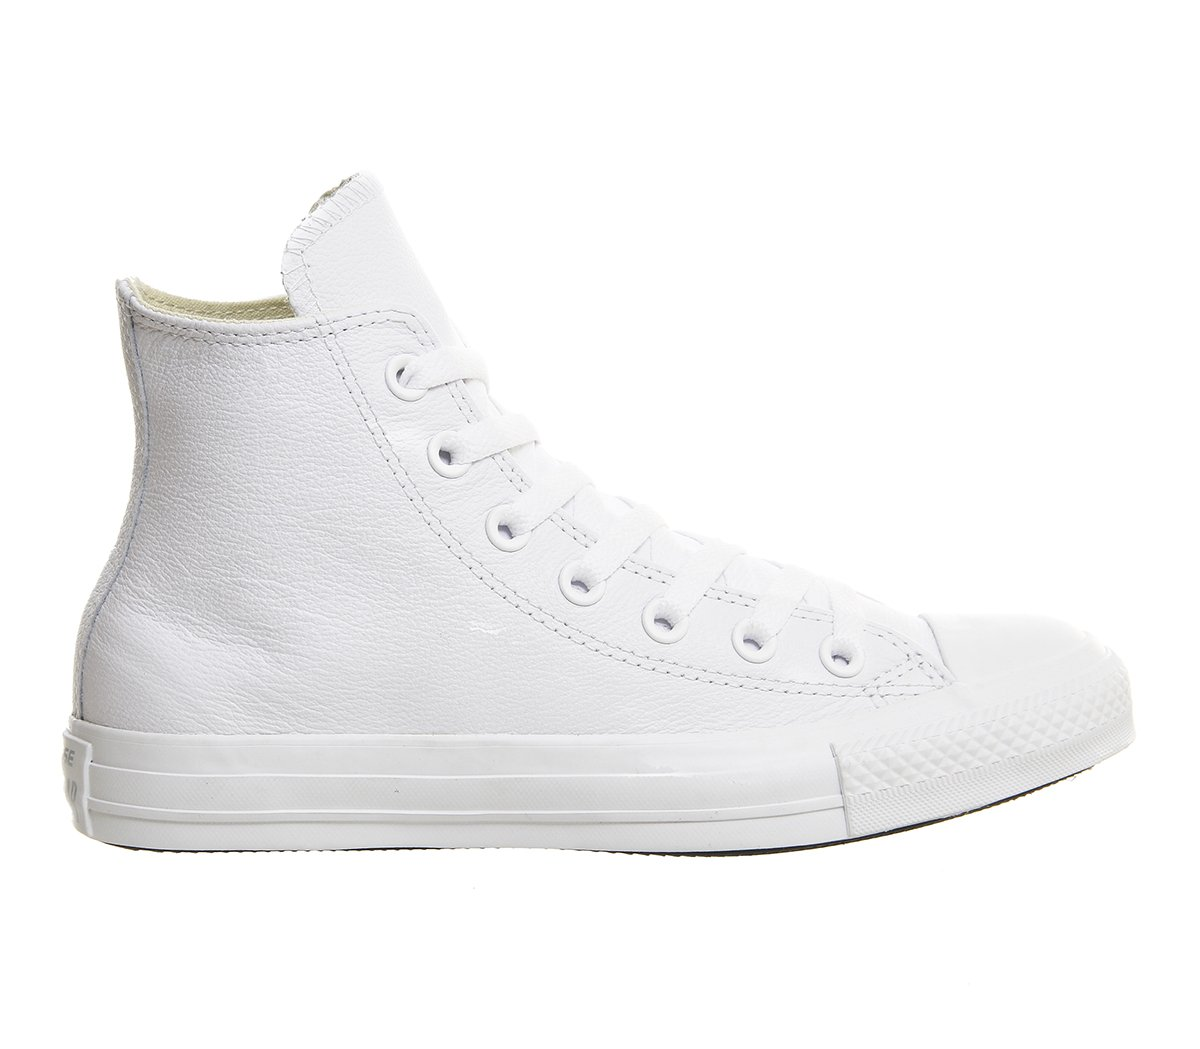 Converse Chuck Taylor All Star Leather High Top Sneaker B01M5LGEO2 9 D(M) US|White Mono